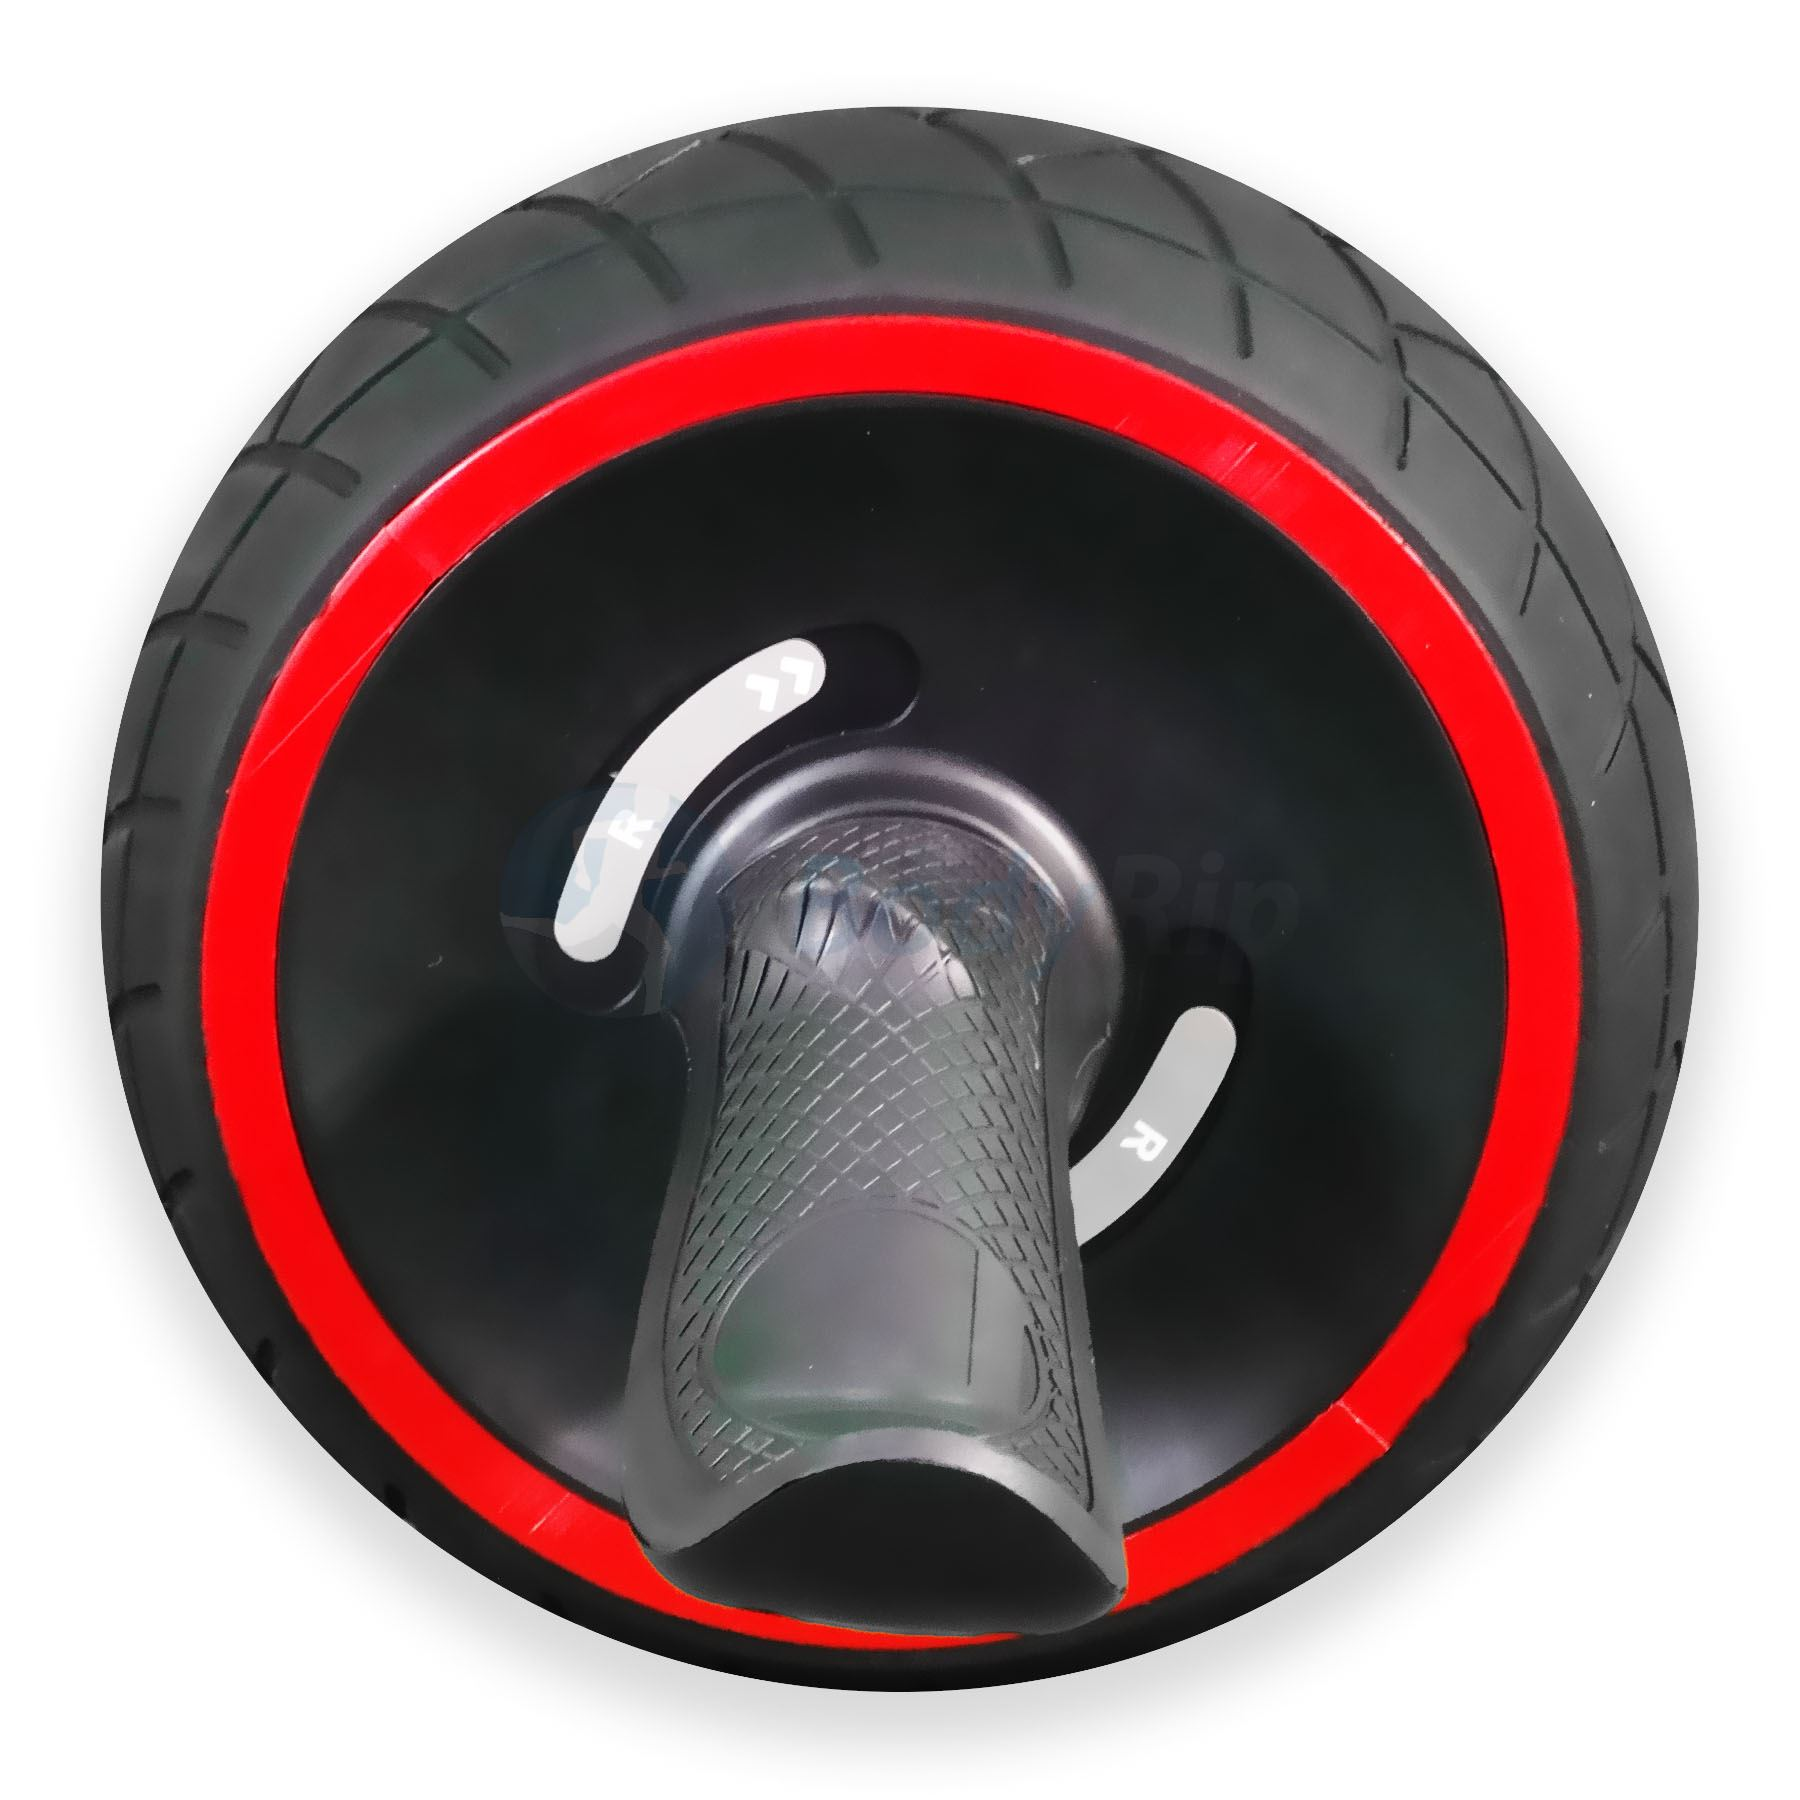 NUOVO-POTENTE-potere-ADDOMINALI-Carver-AB-HAND-GRIP-roller-wheel-HOME-GYM miniatura 3